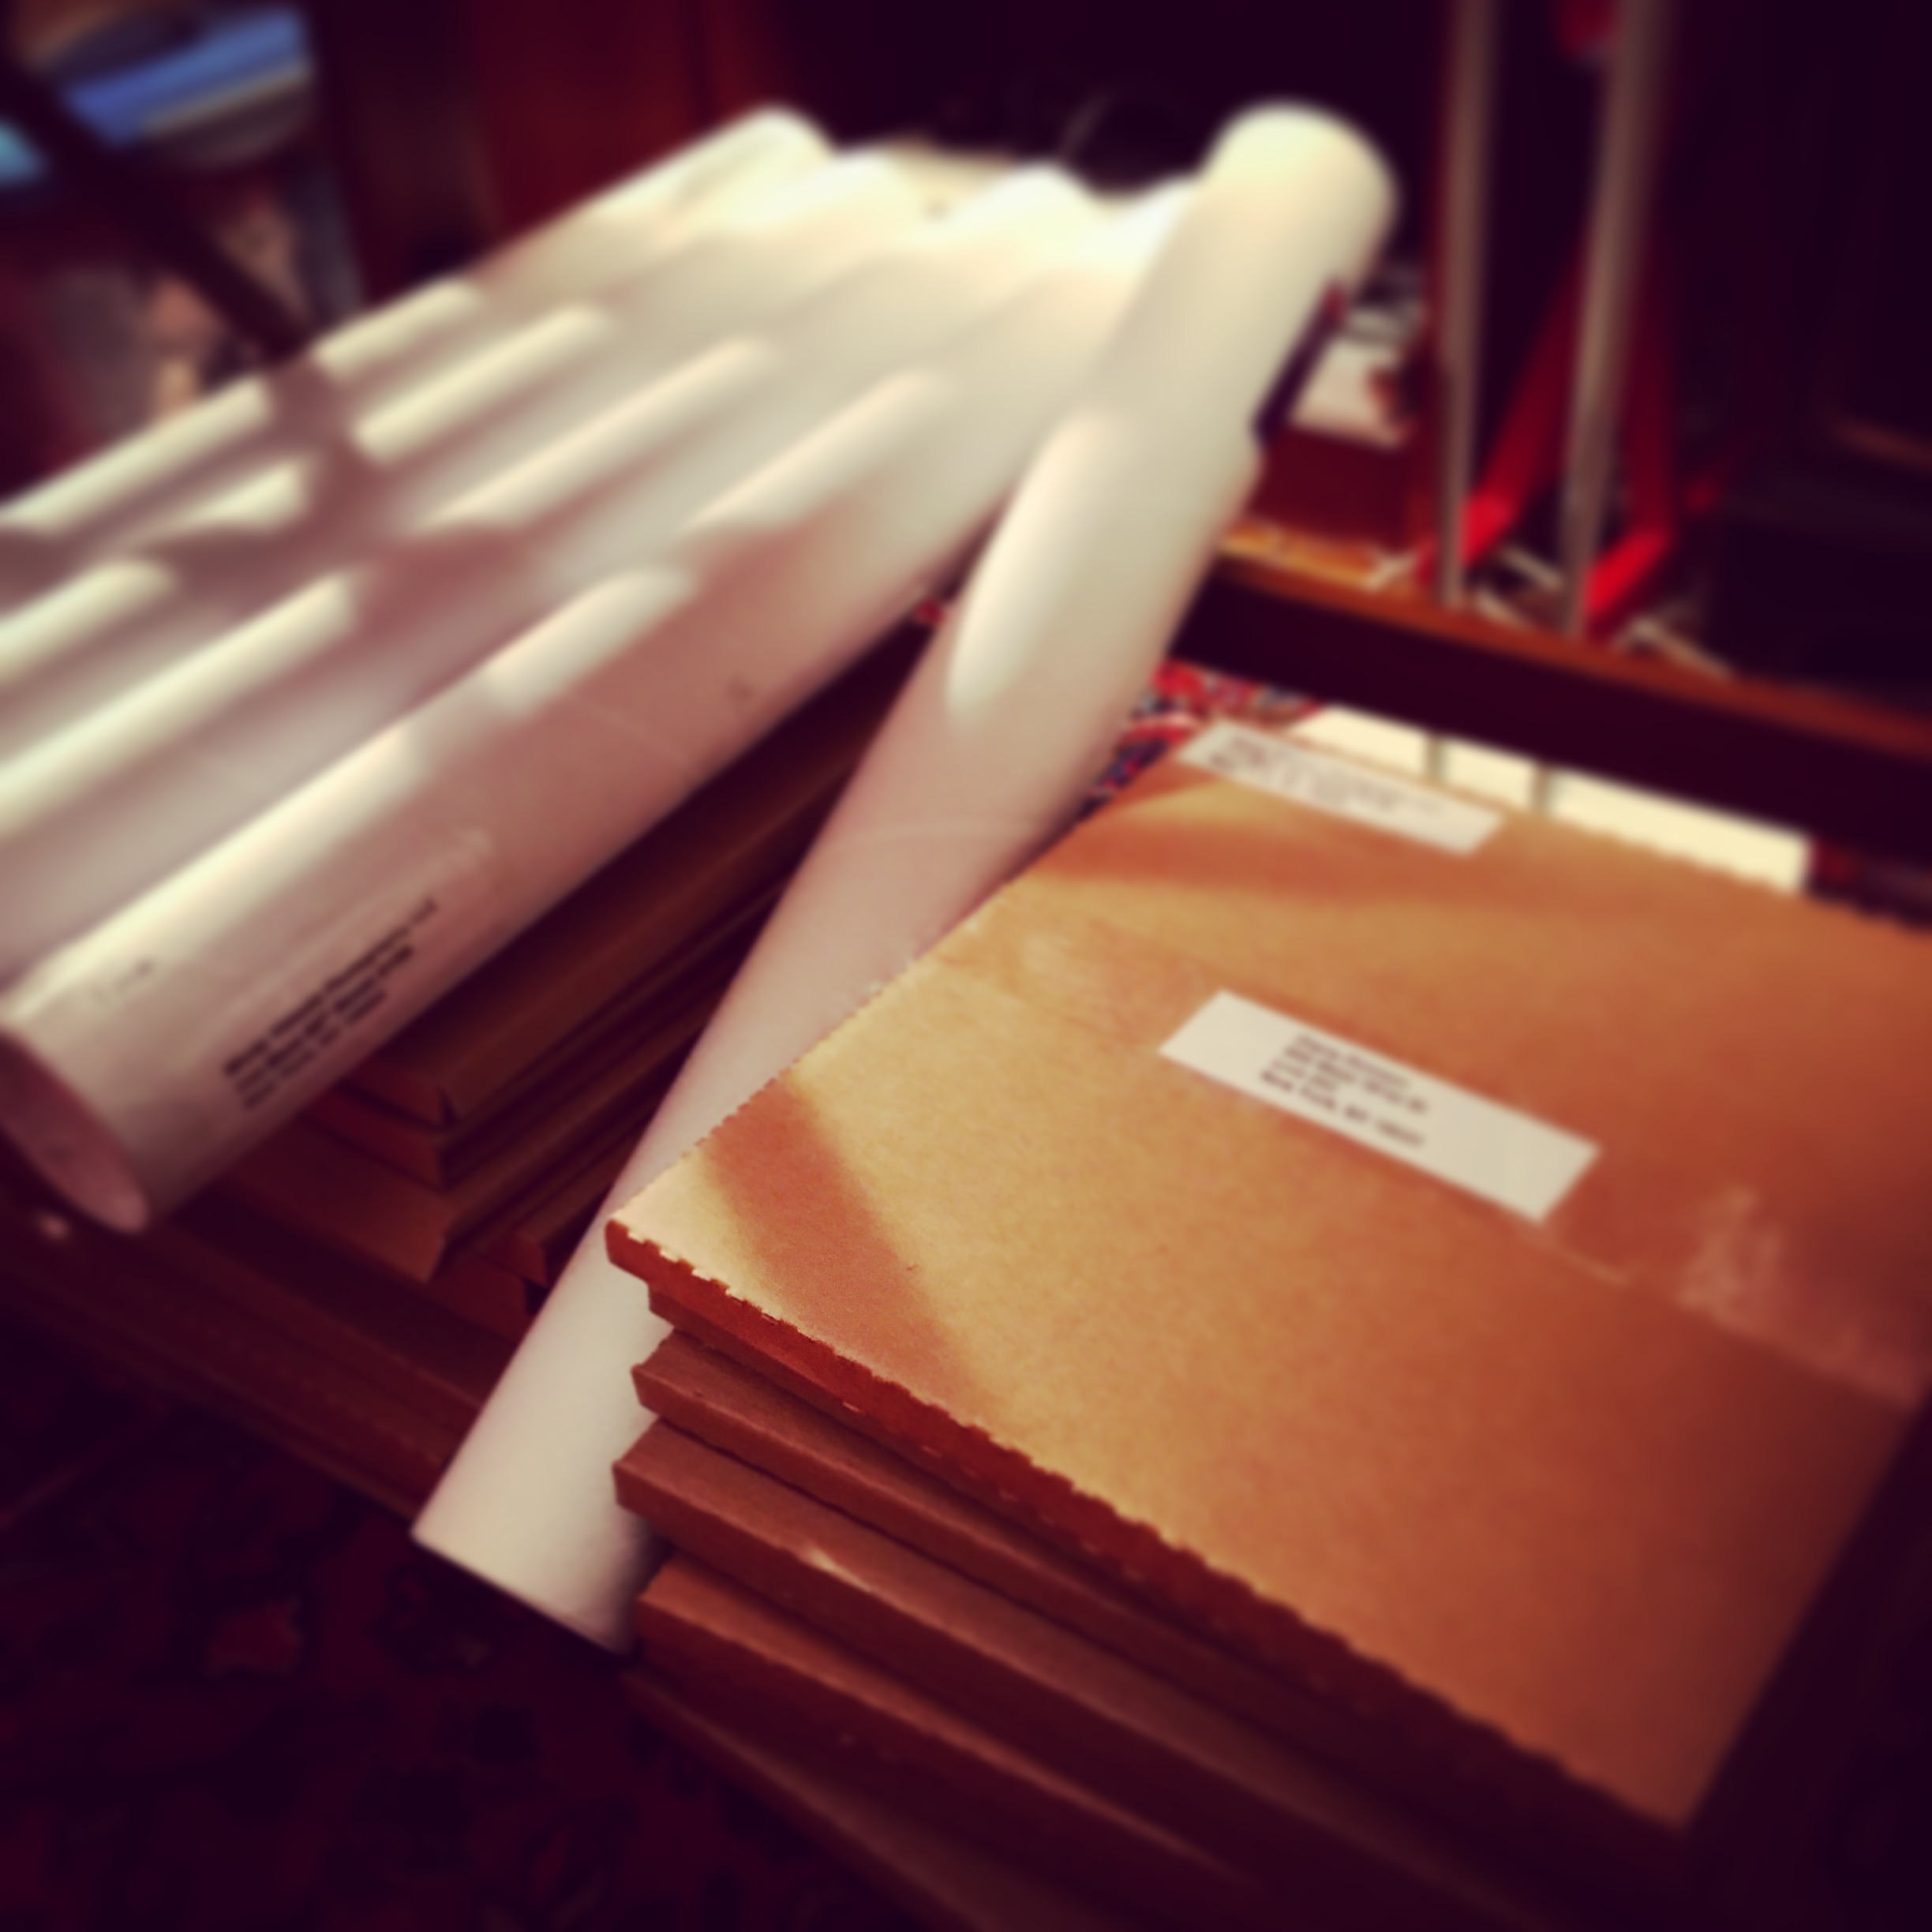 Books and prints are ready to ship!